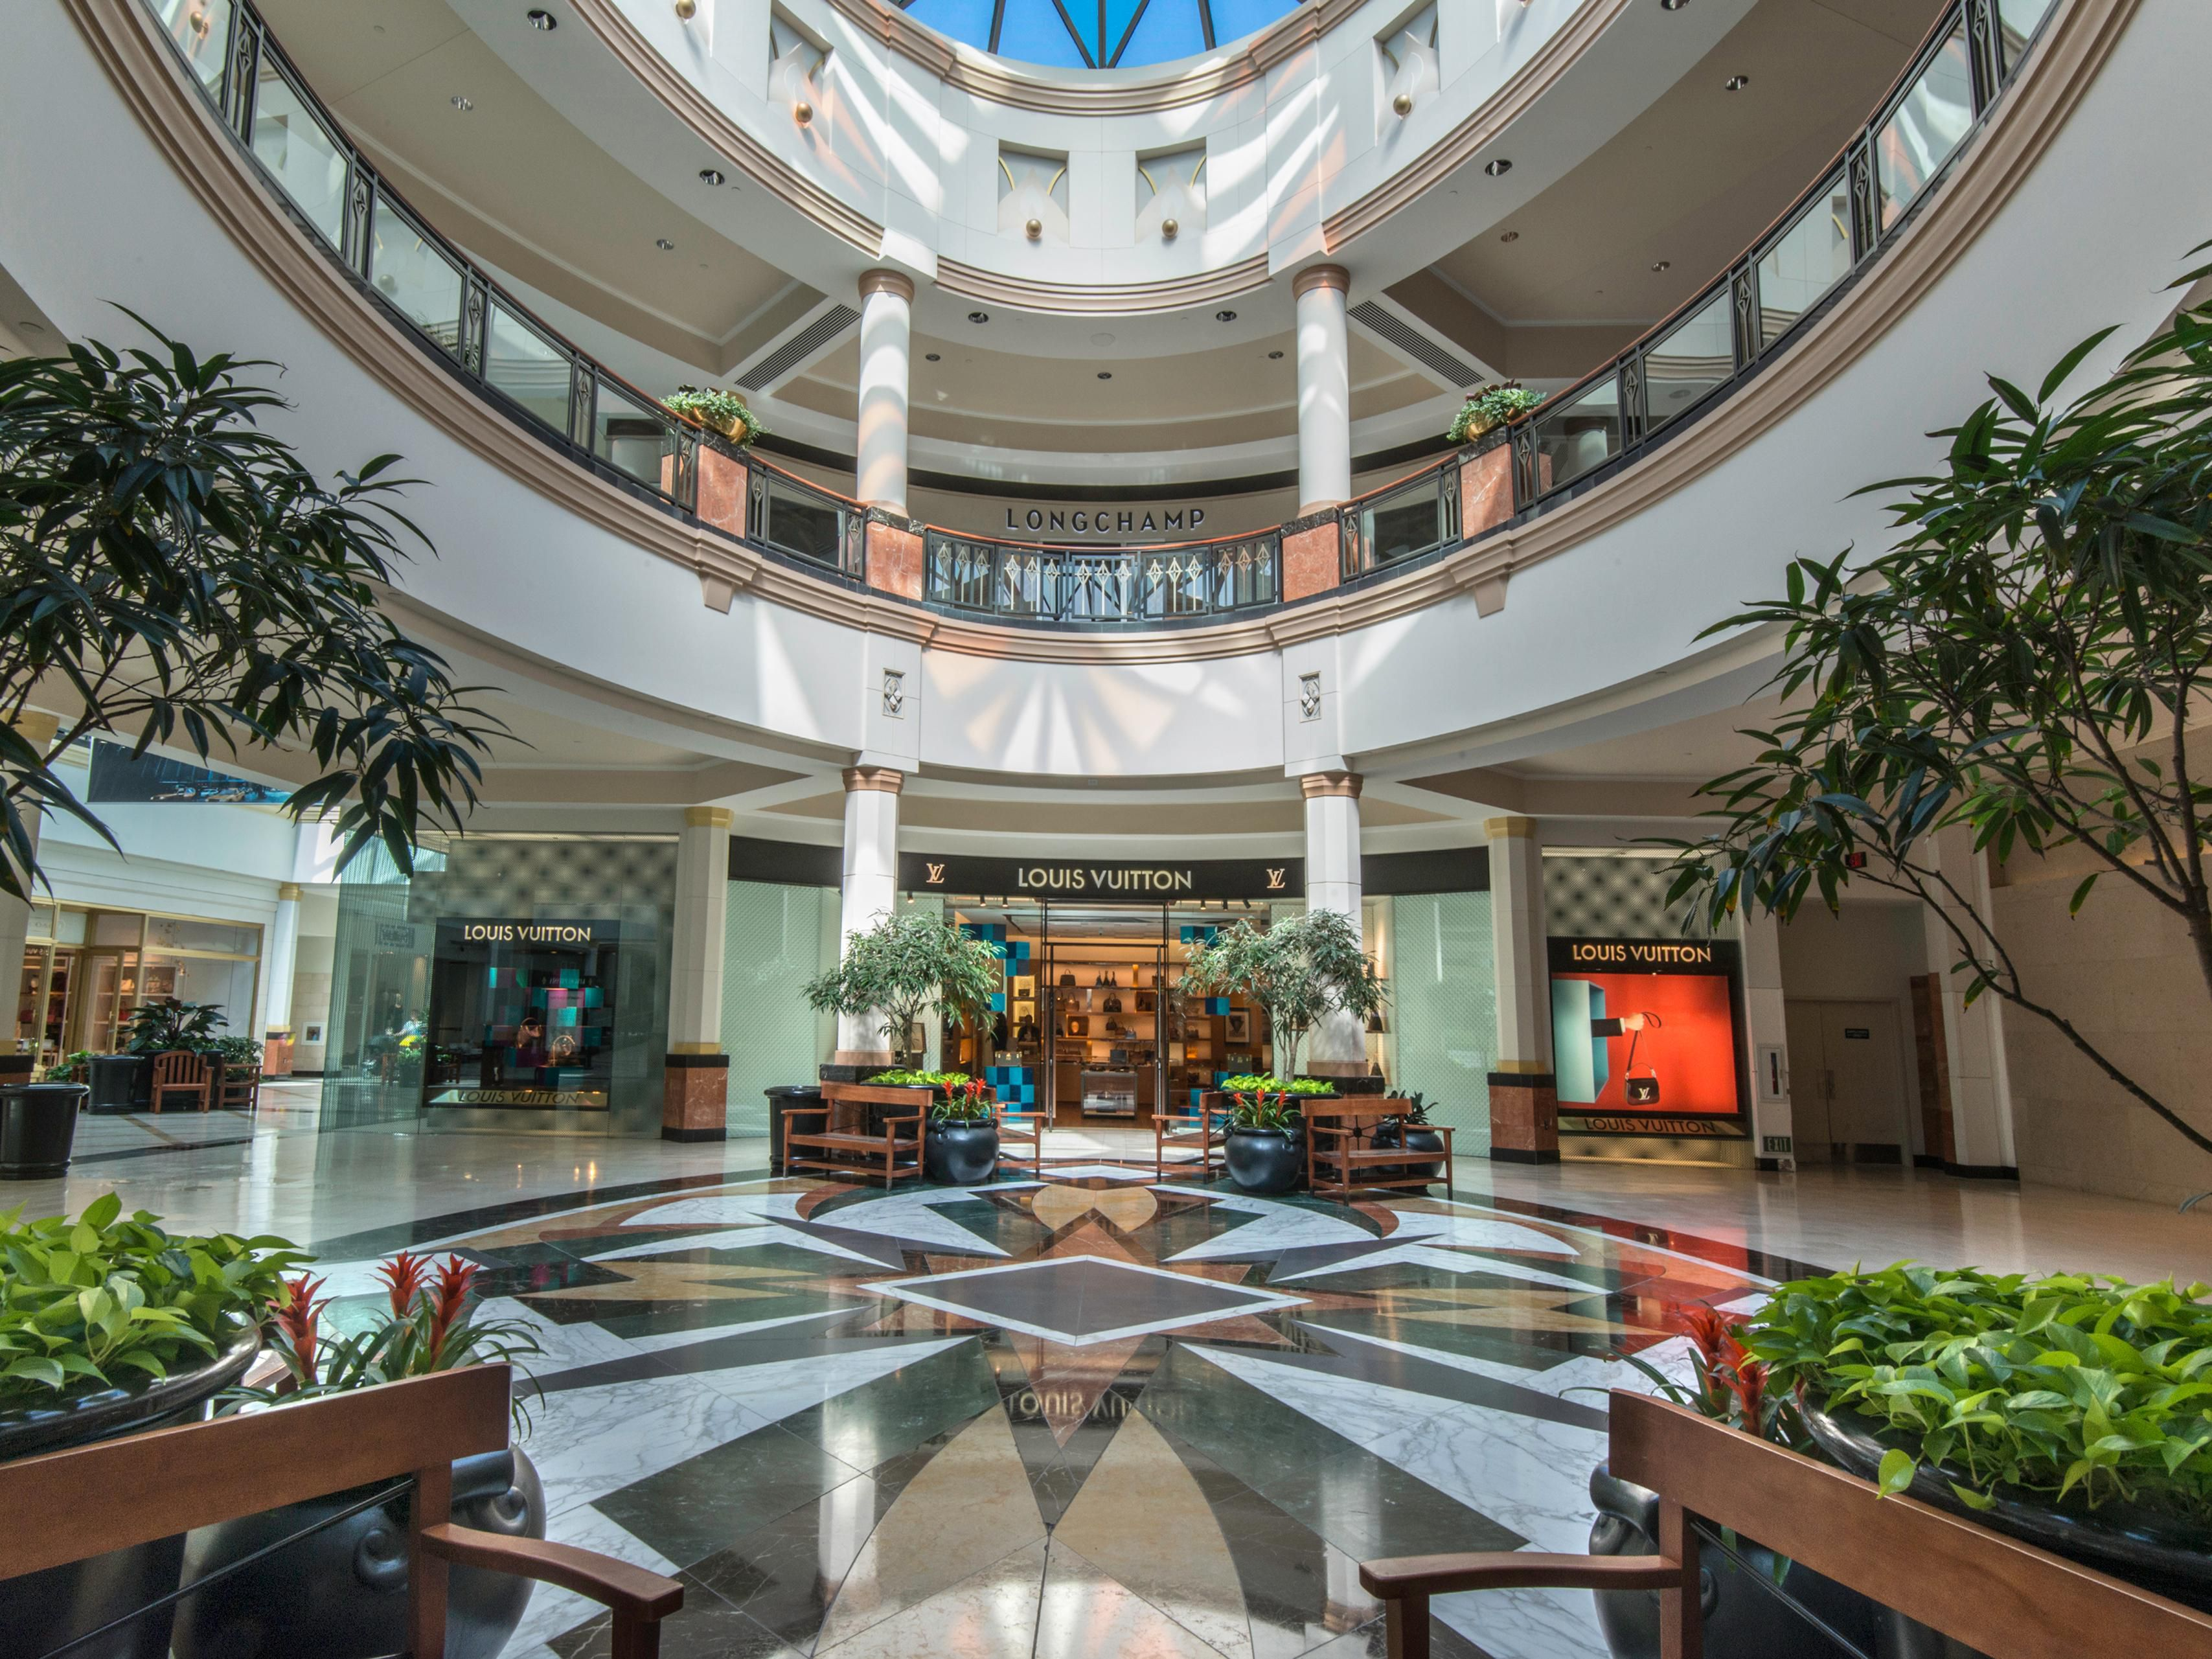 King of Prussia Mall - the country's largest indoor retail space